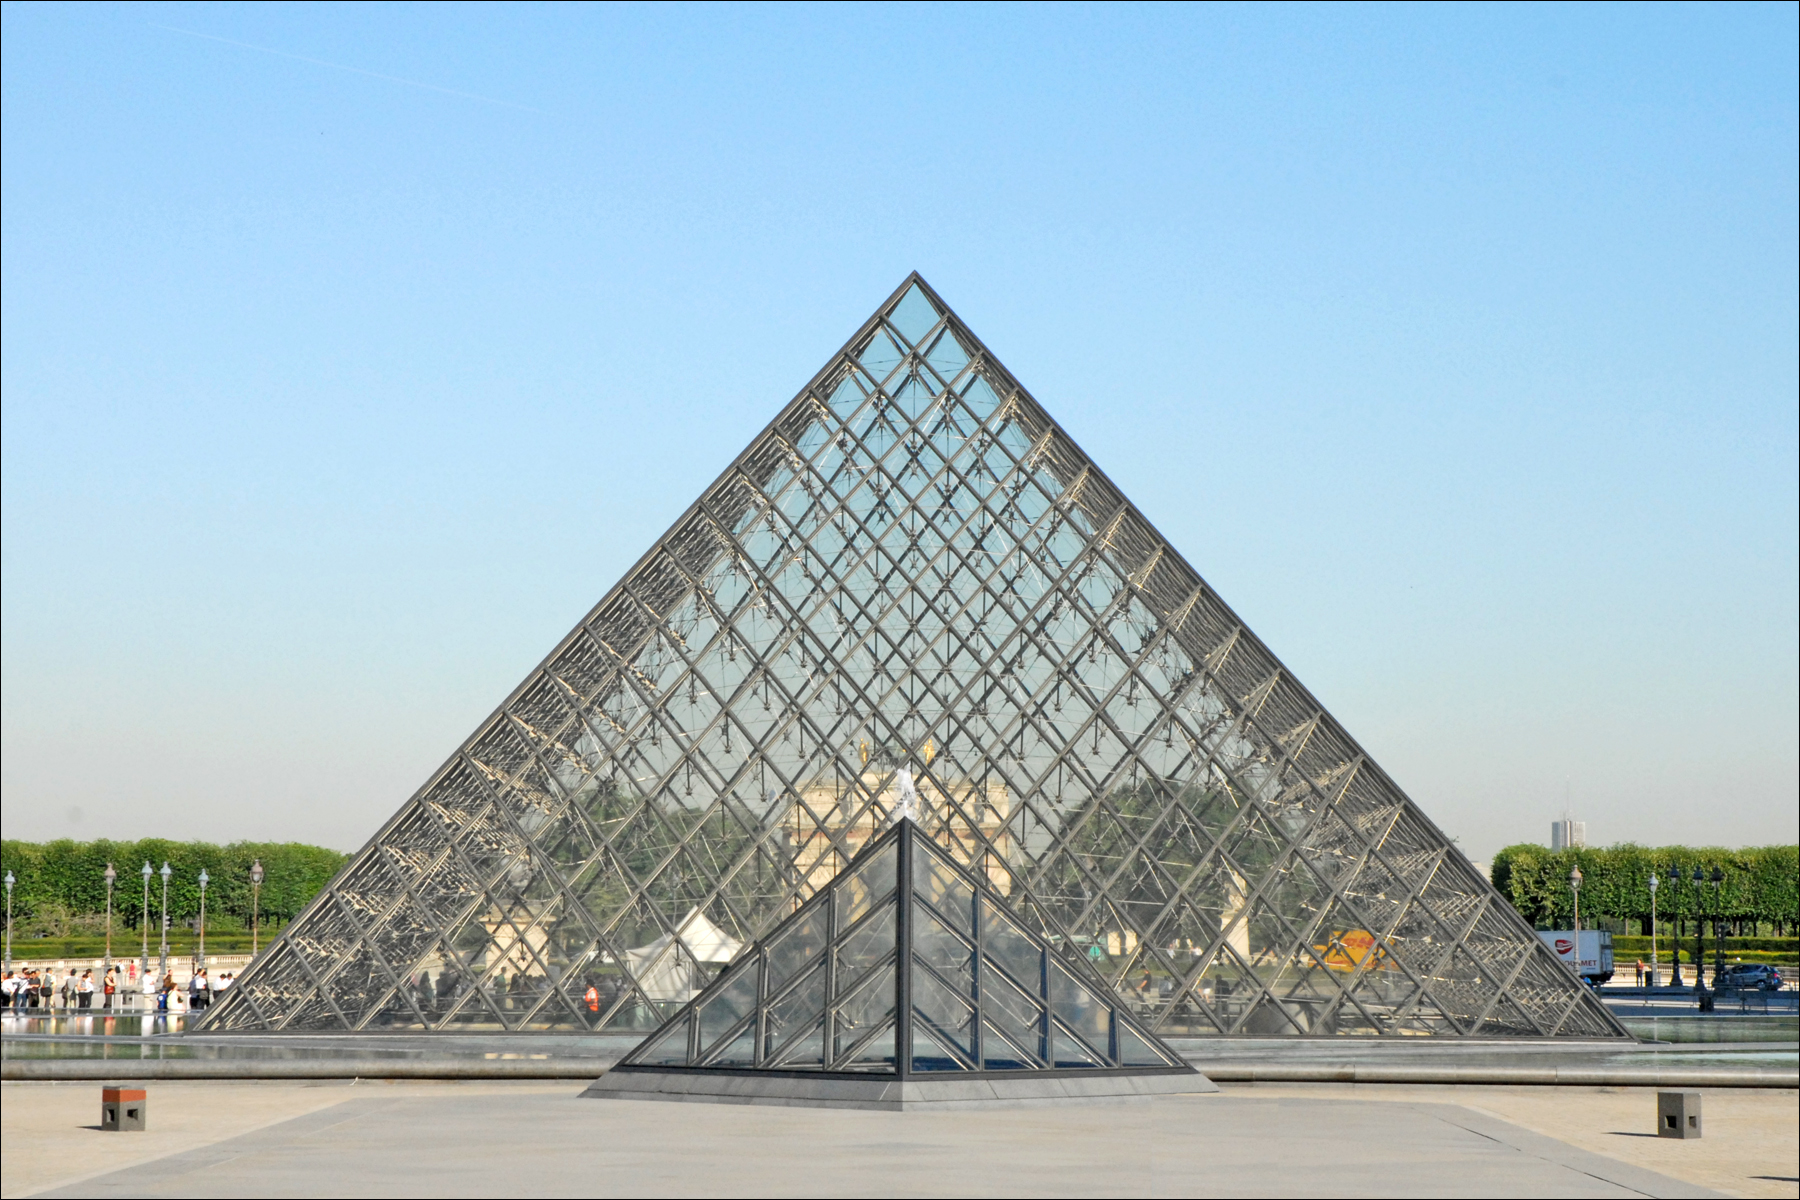 La pyramide du louvre flickr photo sharing - Pyramide du louvre pei ...